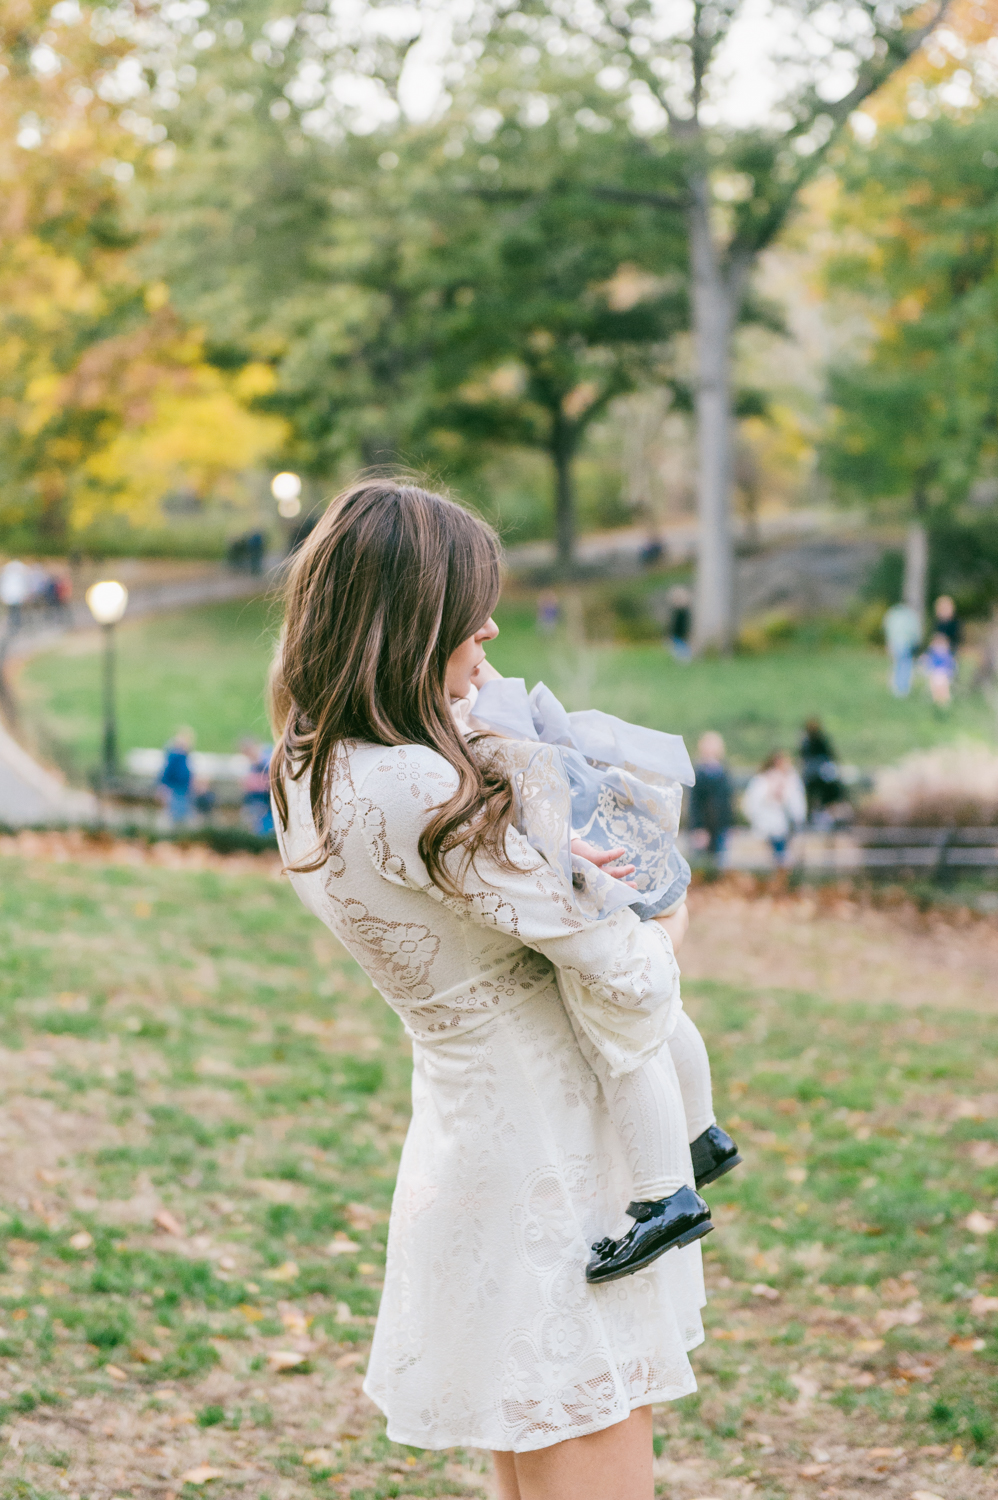 CentralPark.Manhattan.Maternity.Photography.SL16.jpg